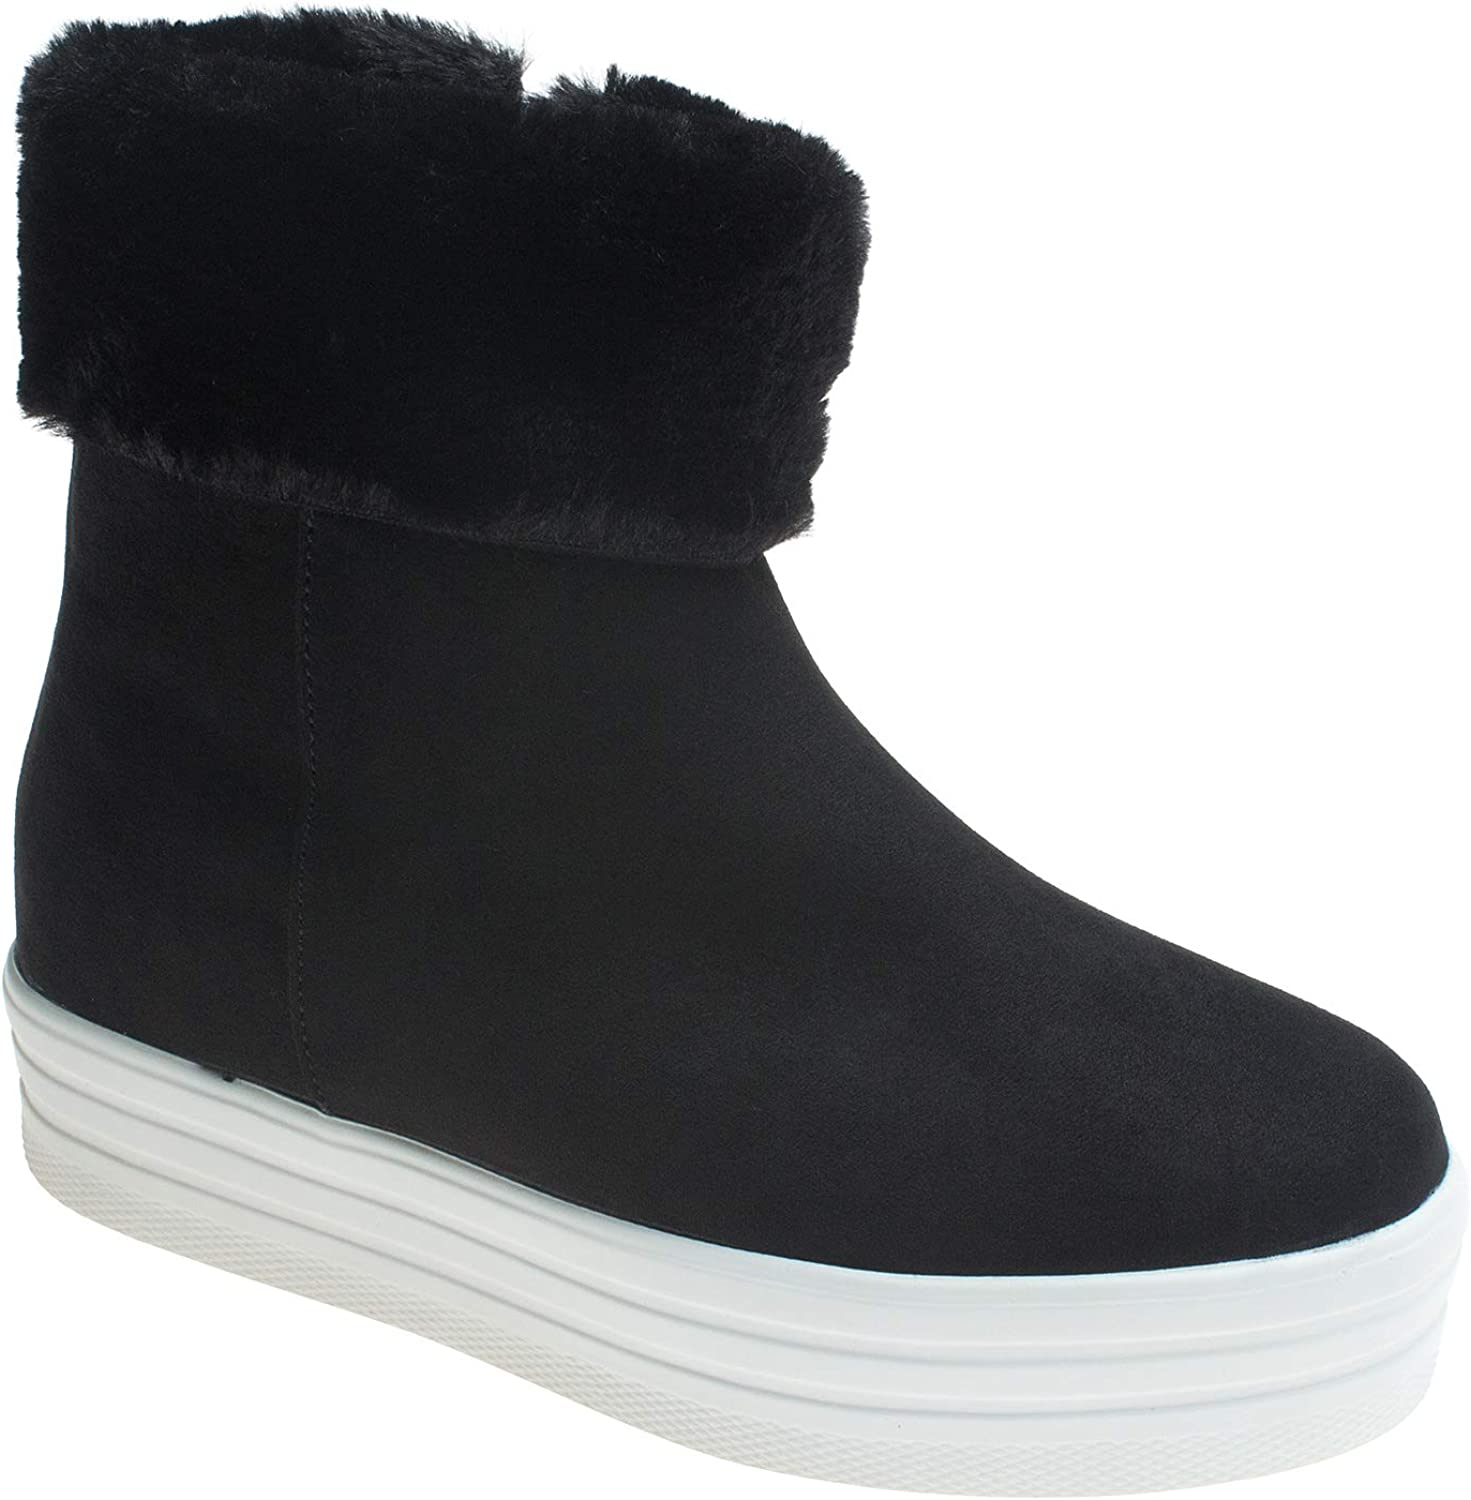 AnnaKastle Womens Fur Lined High Top Sneaker Winter Ankle Boots